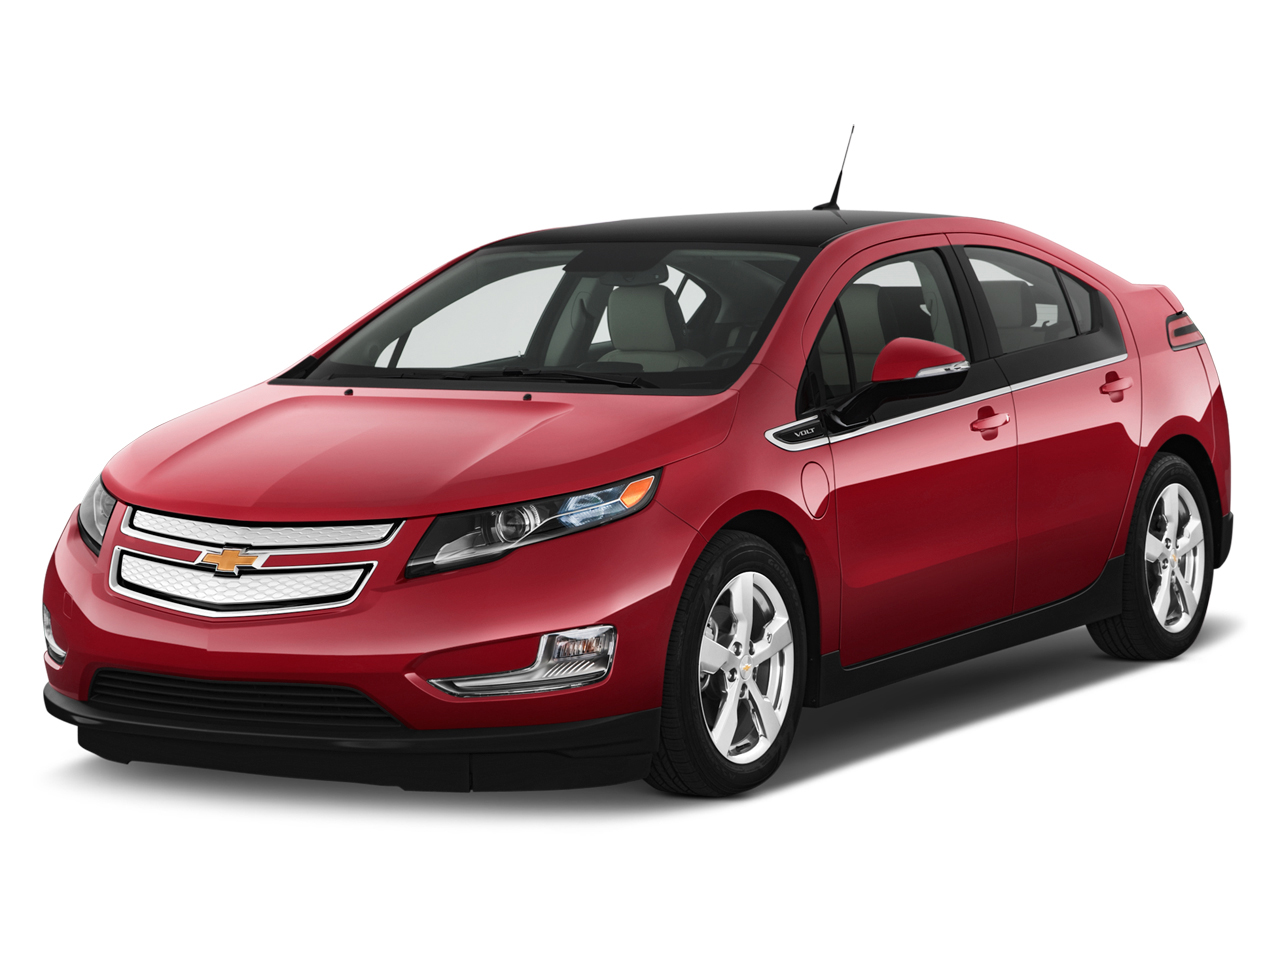 2012 Chevrolet Volt Chevy Reviews Amp Test Drives Green